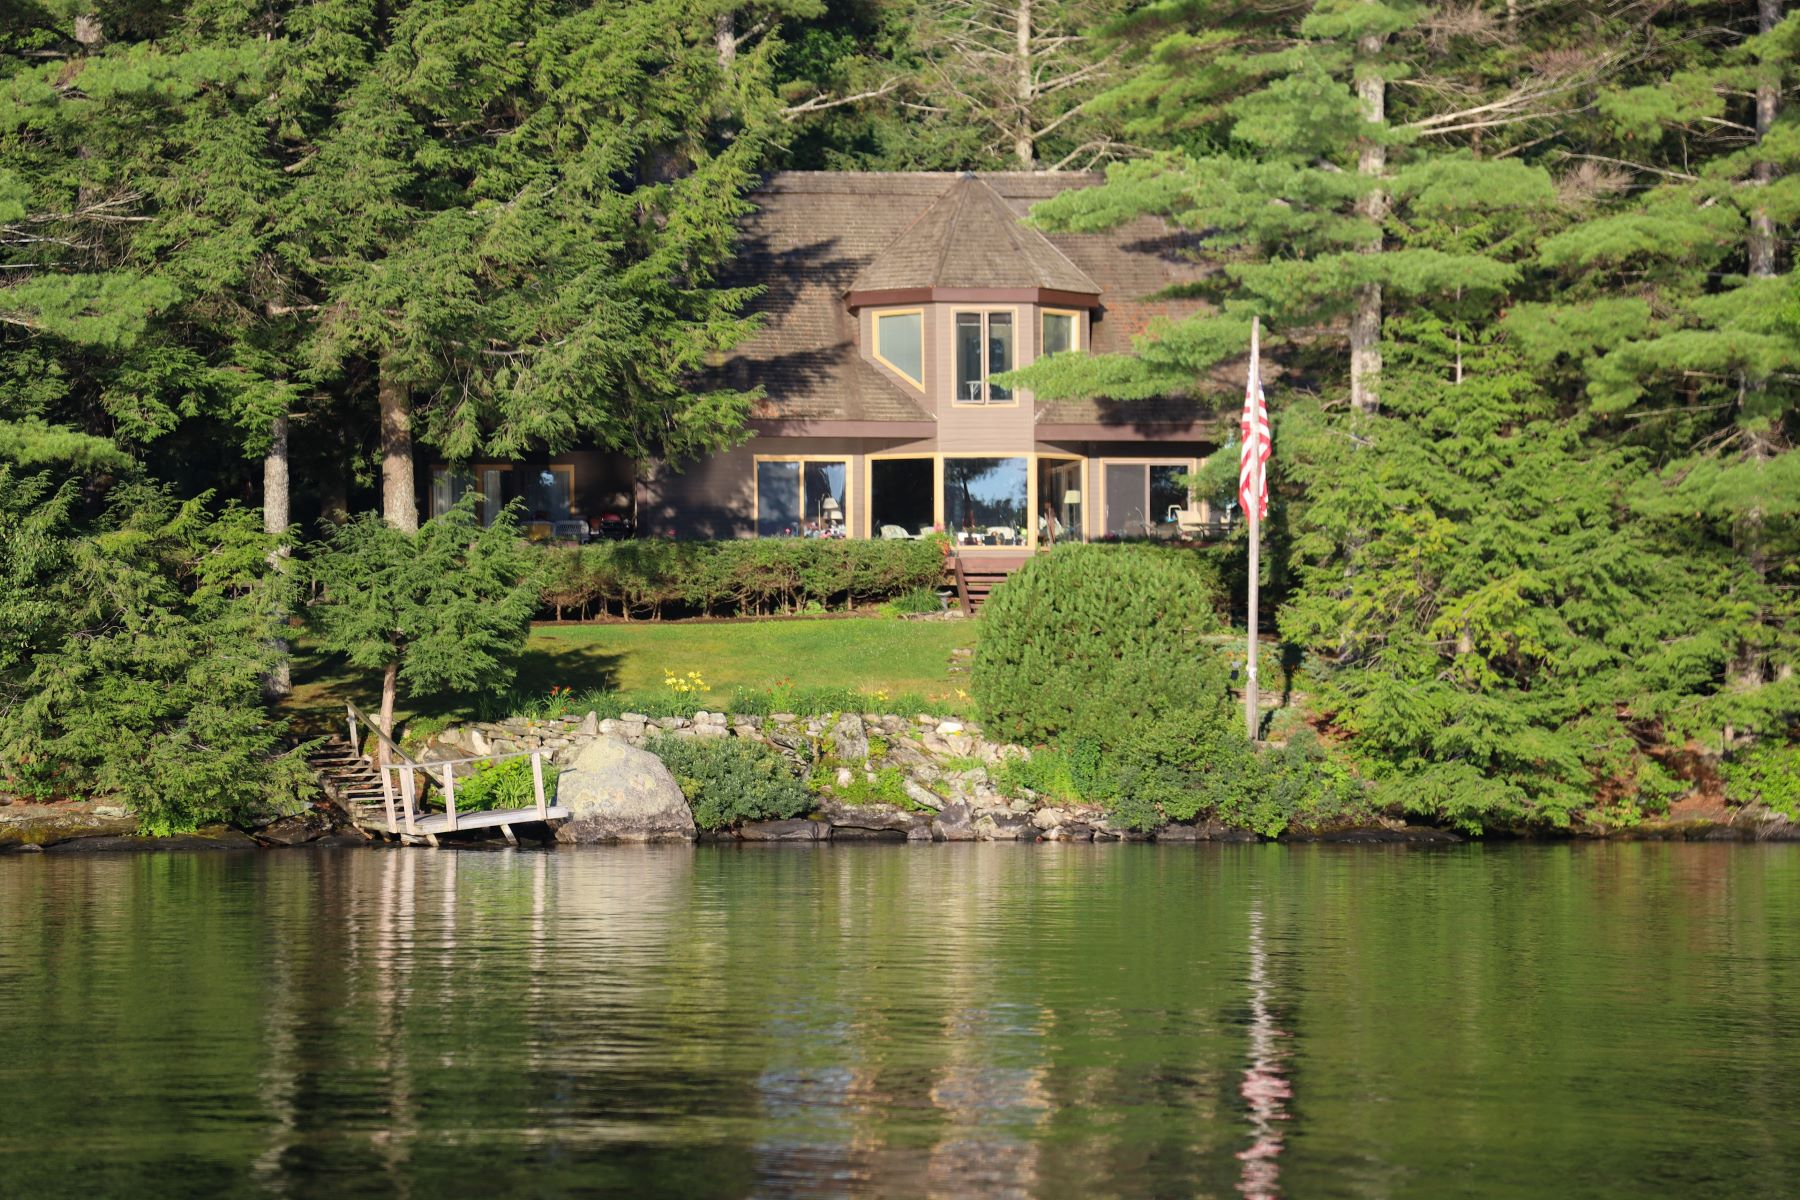 Single Family Homes for Active at 90 Garnet Street Sunapee, New Hampshire 03782 United States